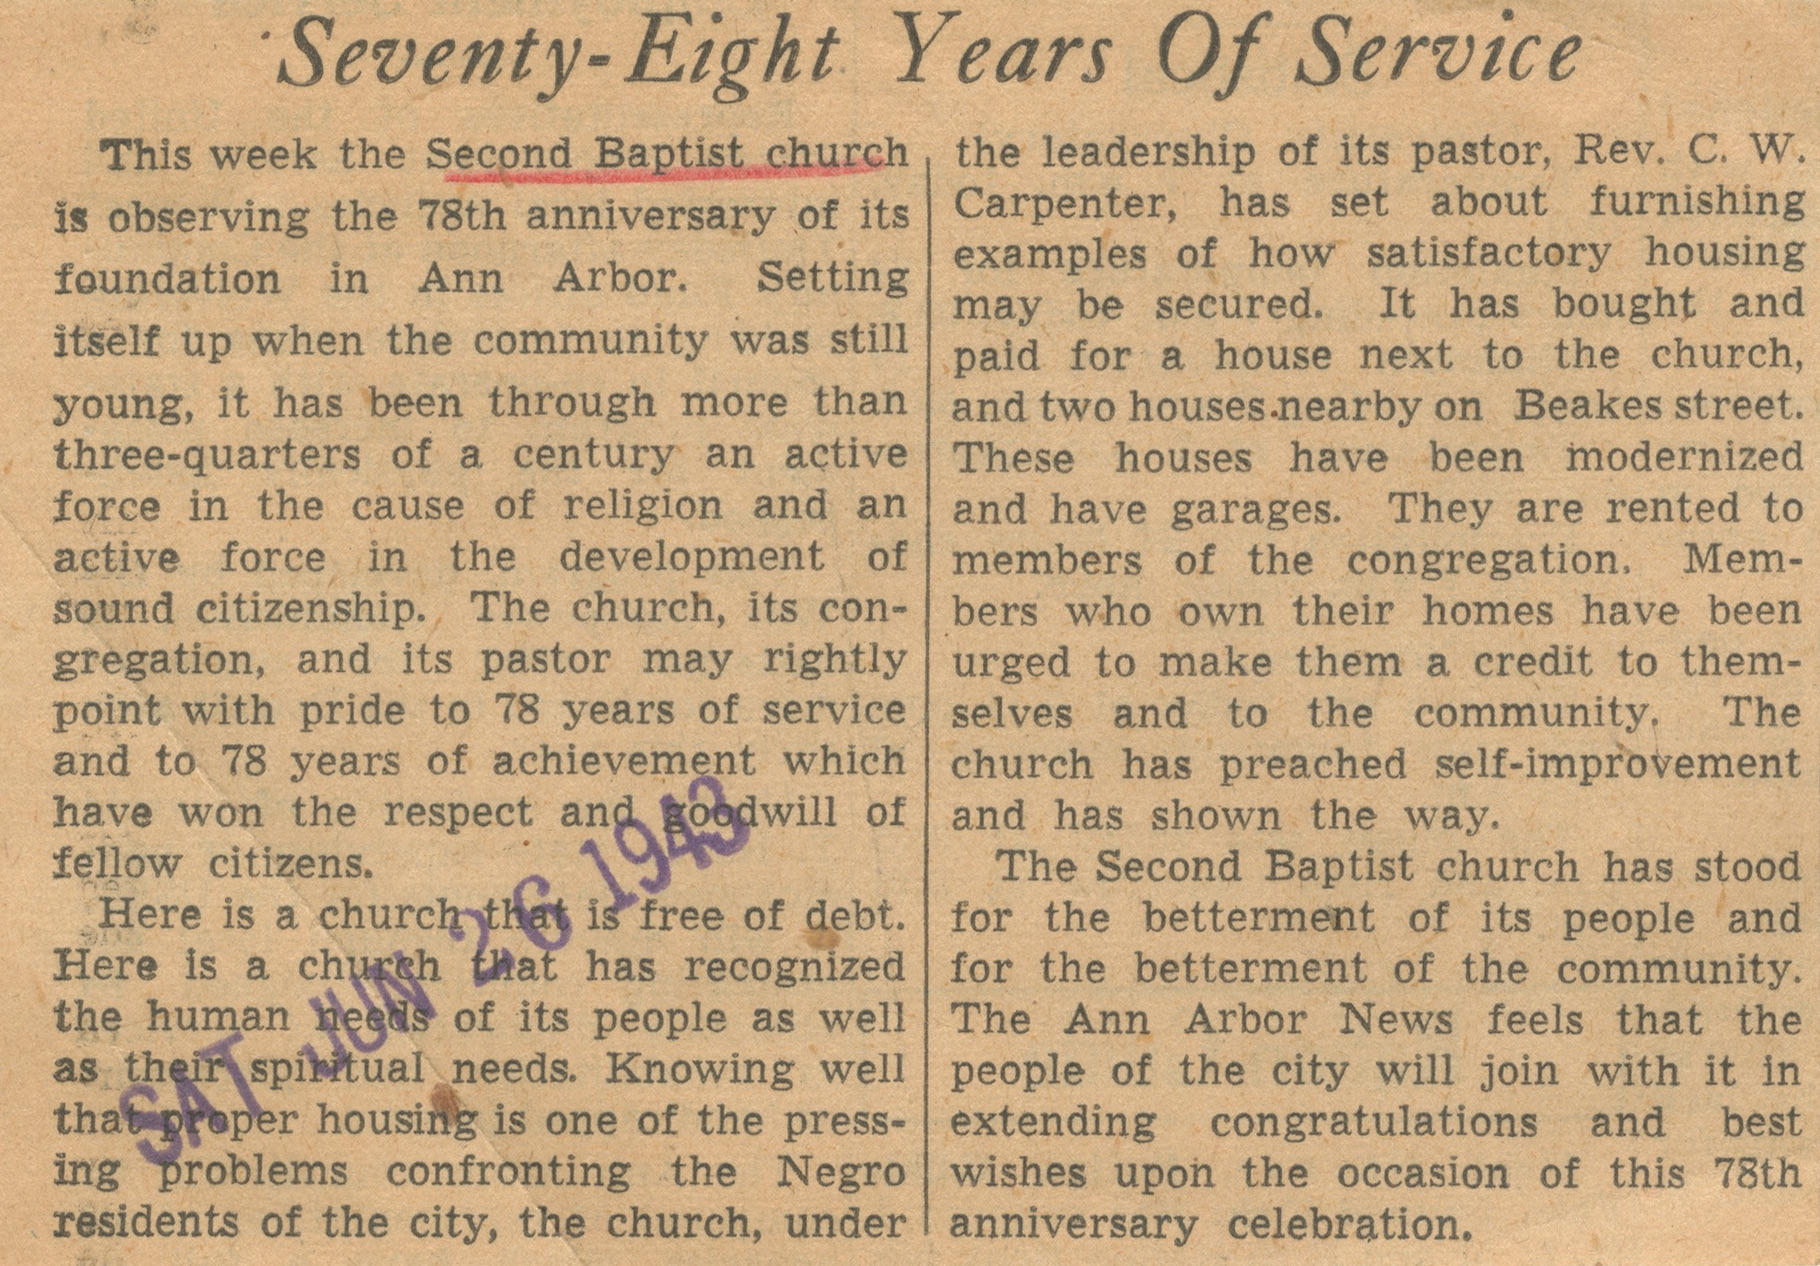 Seventy-Eight Years Of Service image